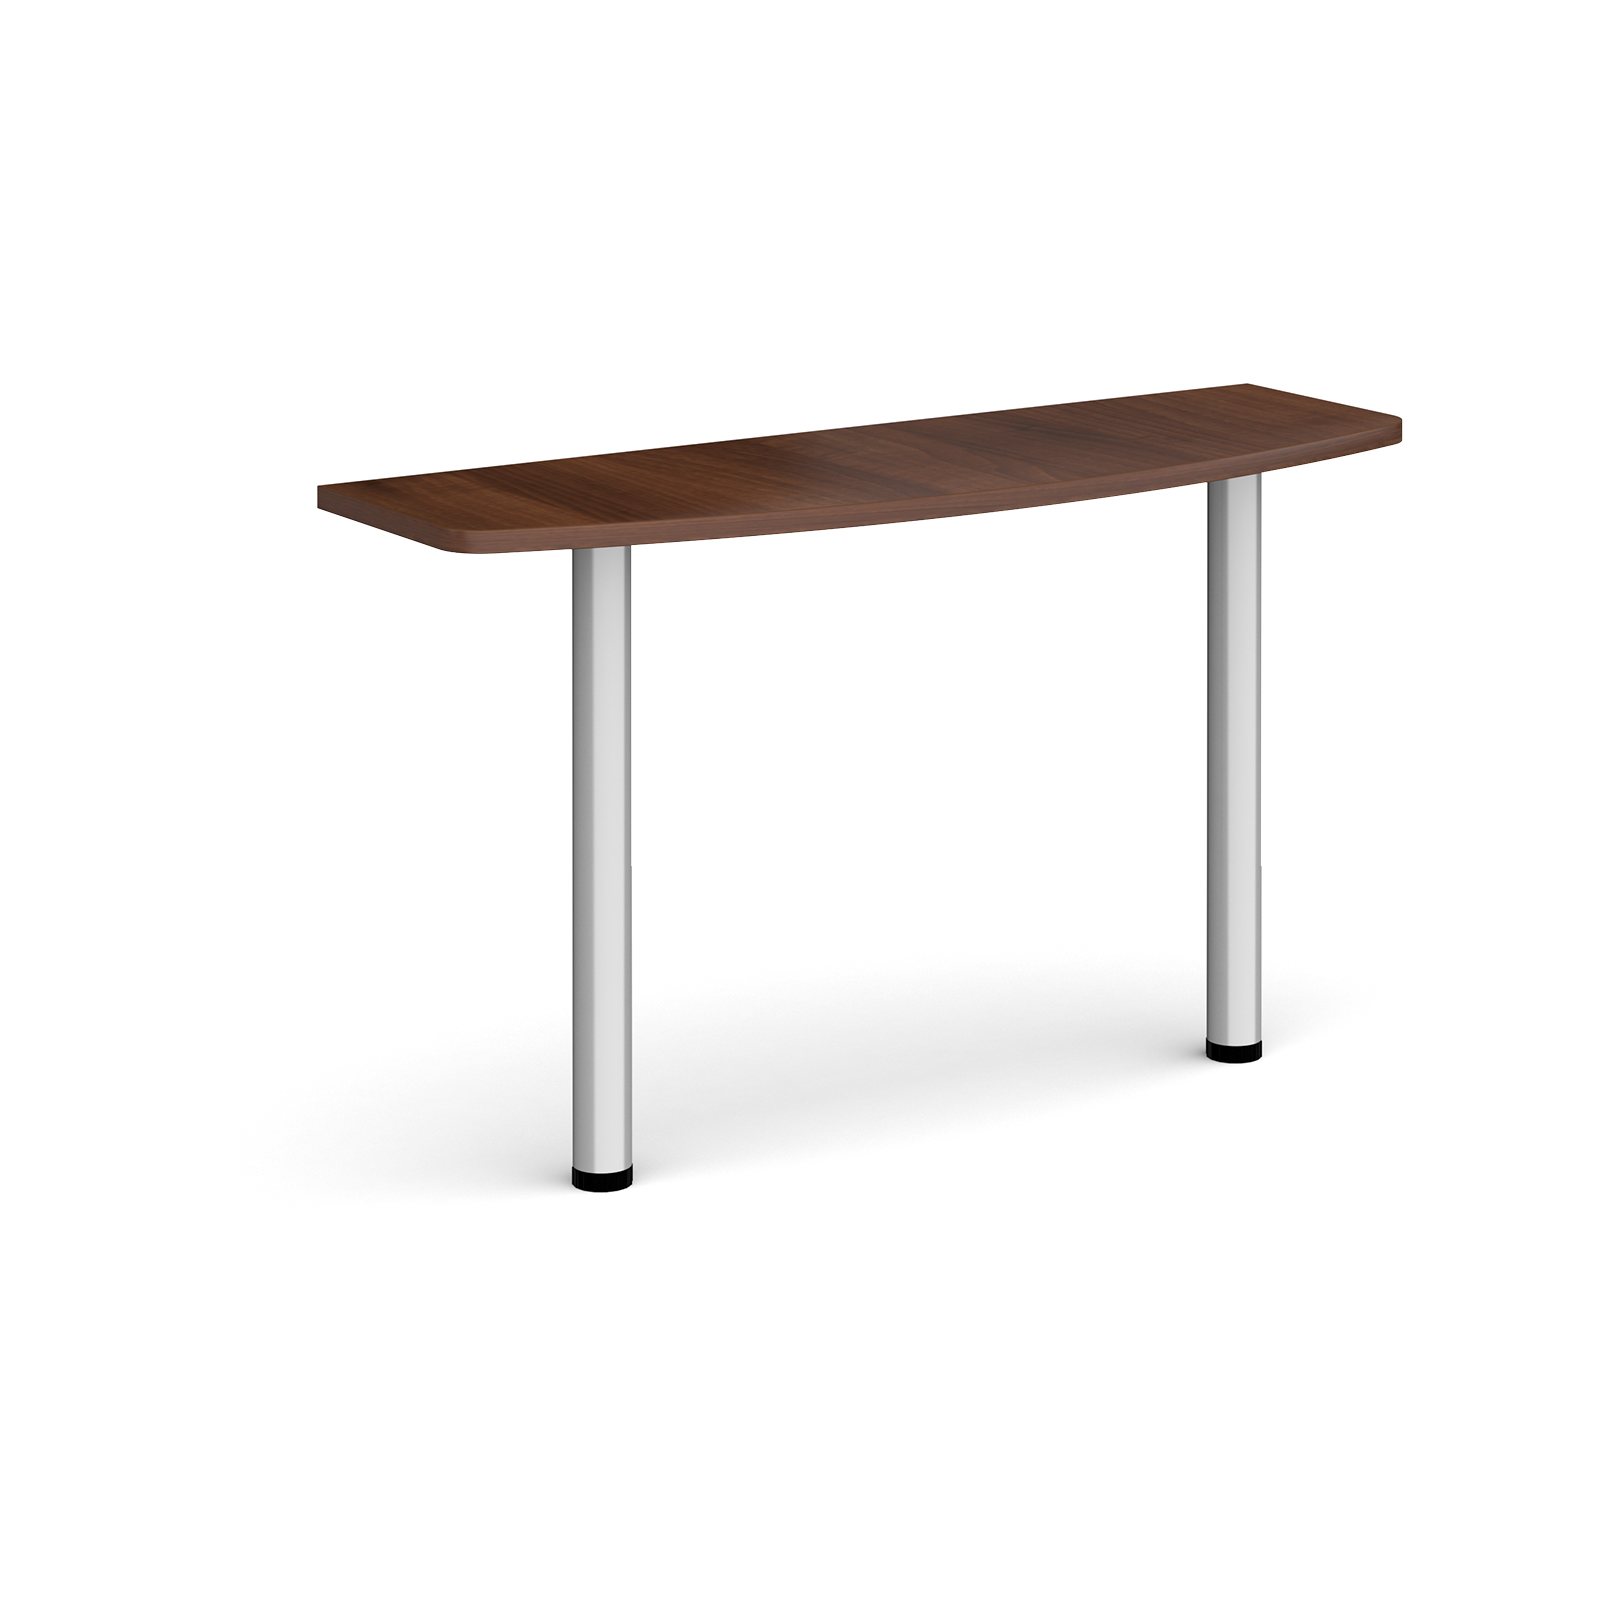 D-end desk extension table 1200mm wide with silver legs - walnut top